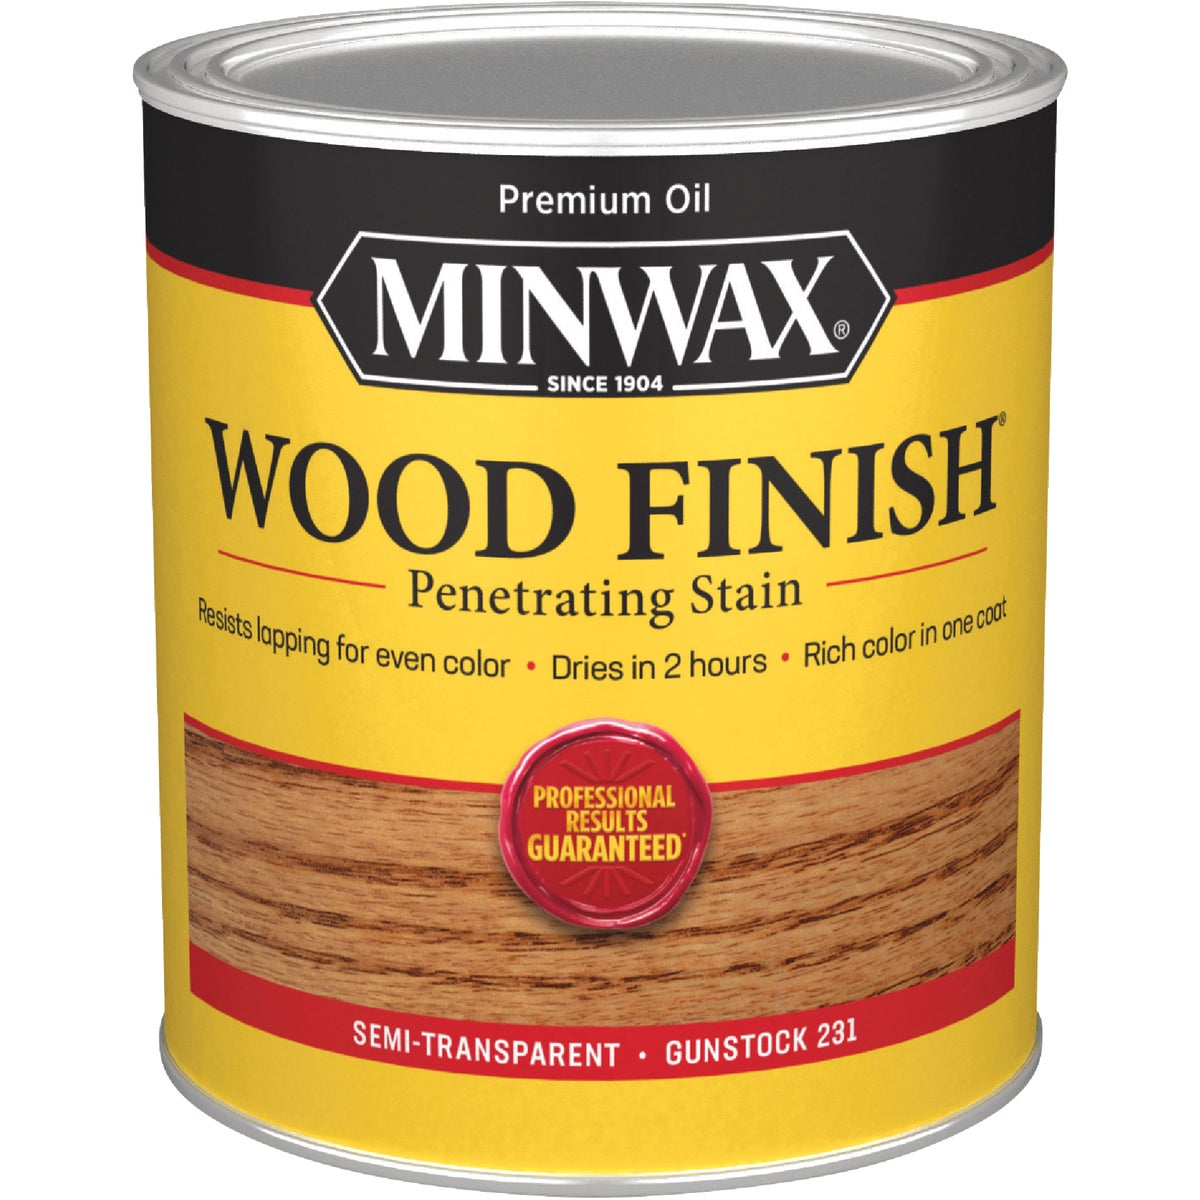 GUNSTOCK WOOD STAIN - 700454444 by Minwax Company